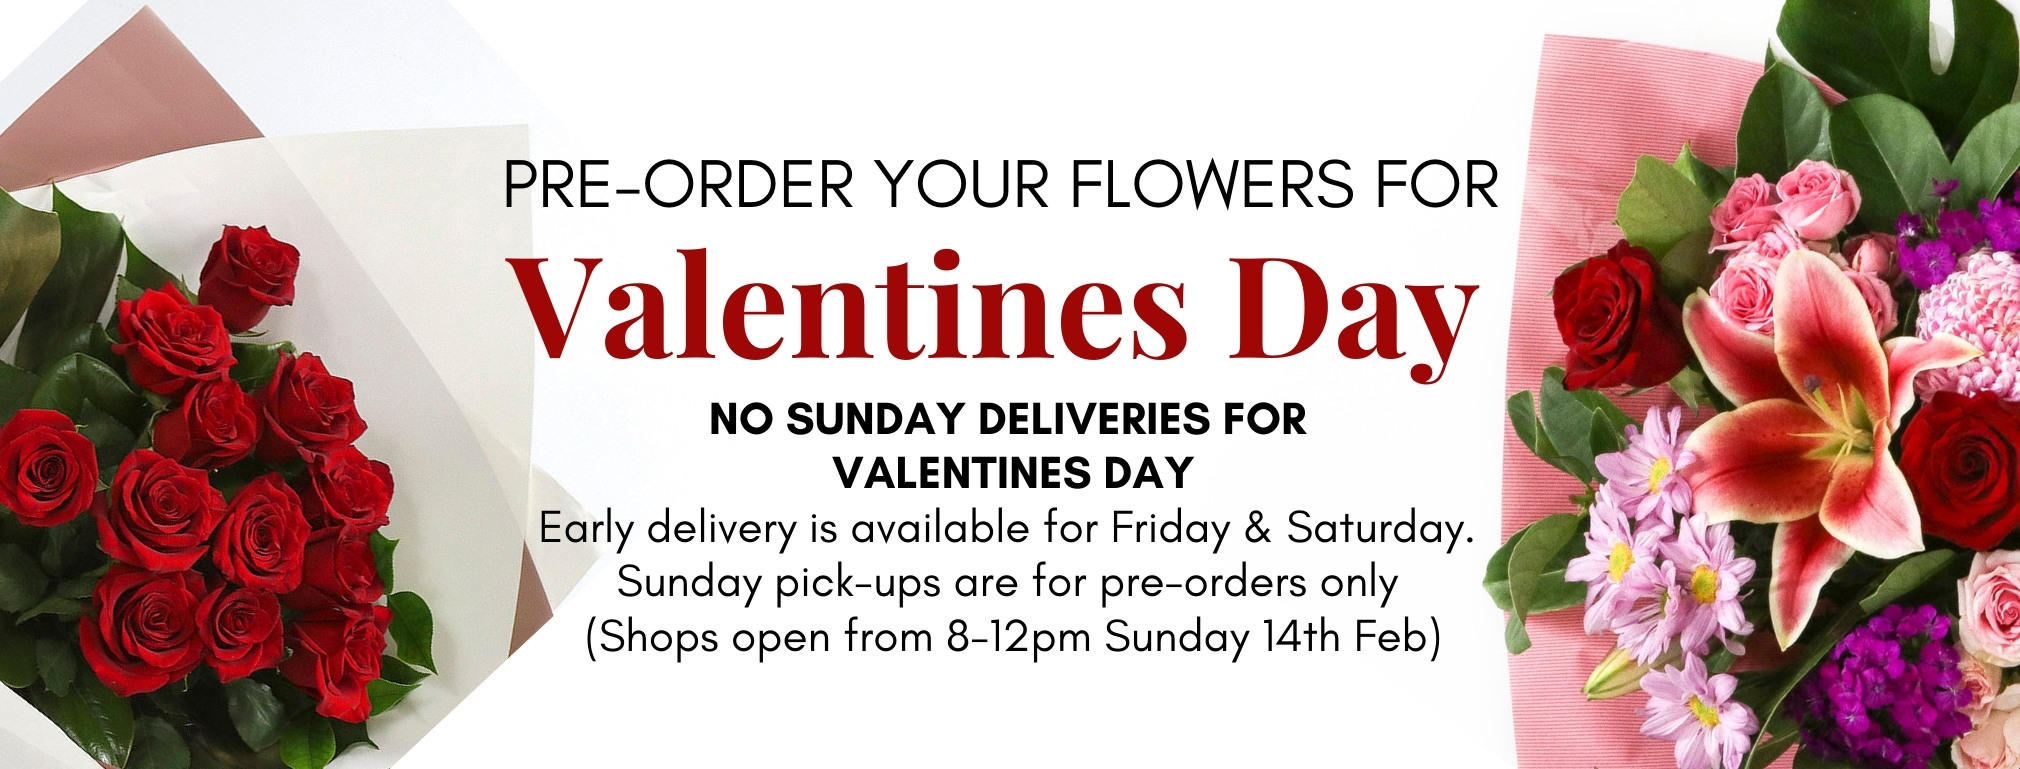 Order Flowers Valentines day